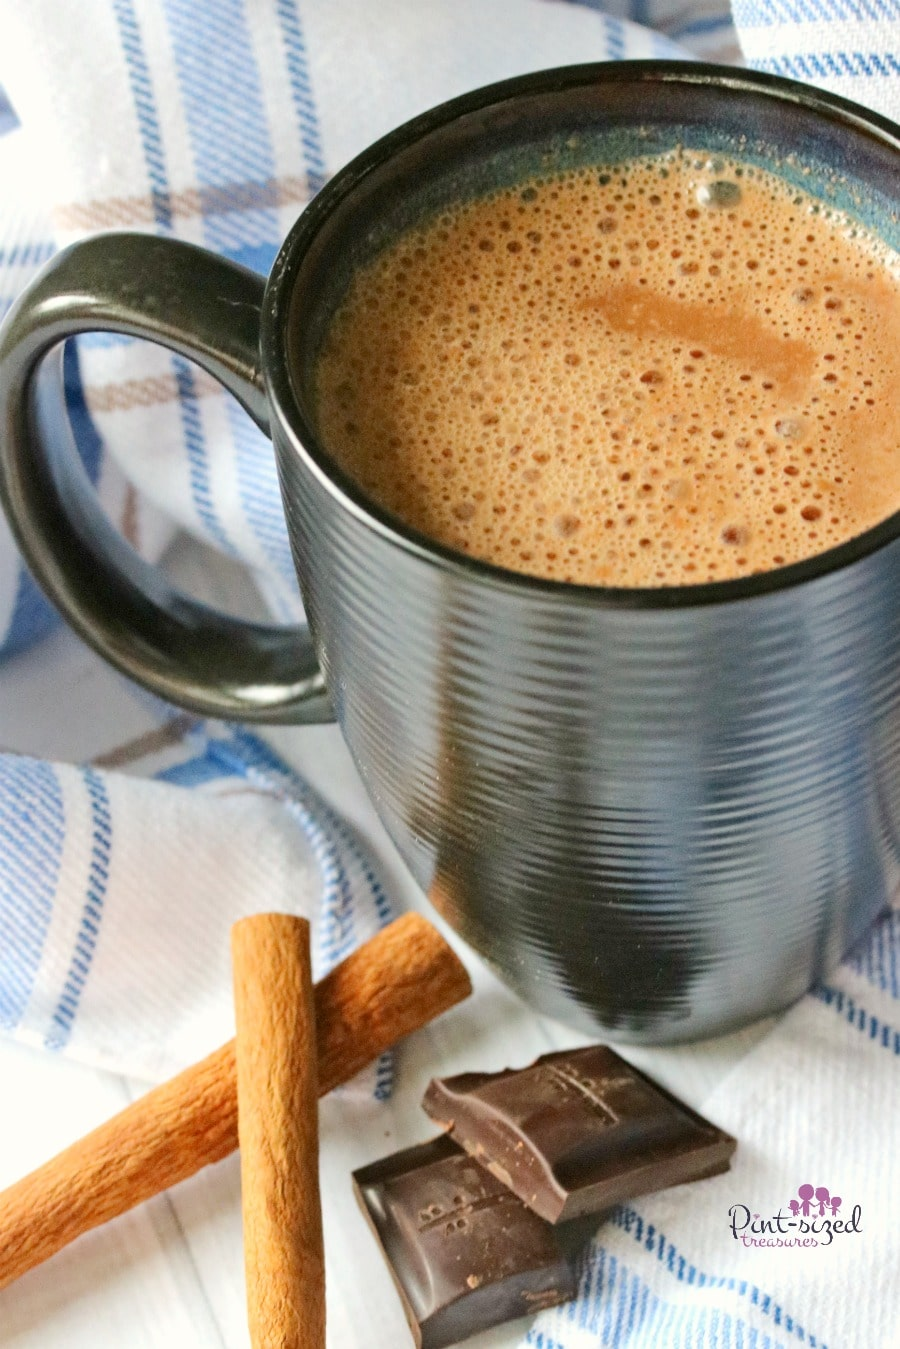 Tiny notes of coconut and almond add musical pizzaz to this minty coconut hot chocolate recipe. This recipe is a chocolate lovers dream who wants to enjoy all treats and warm drinks in a clean eating style!